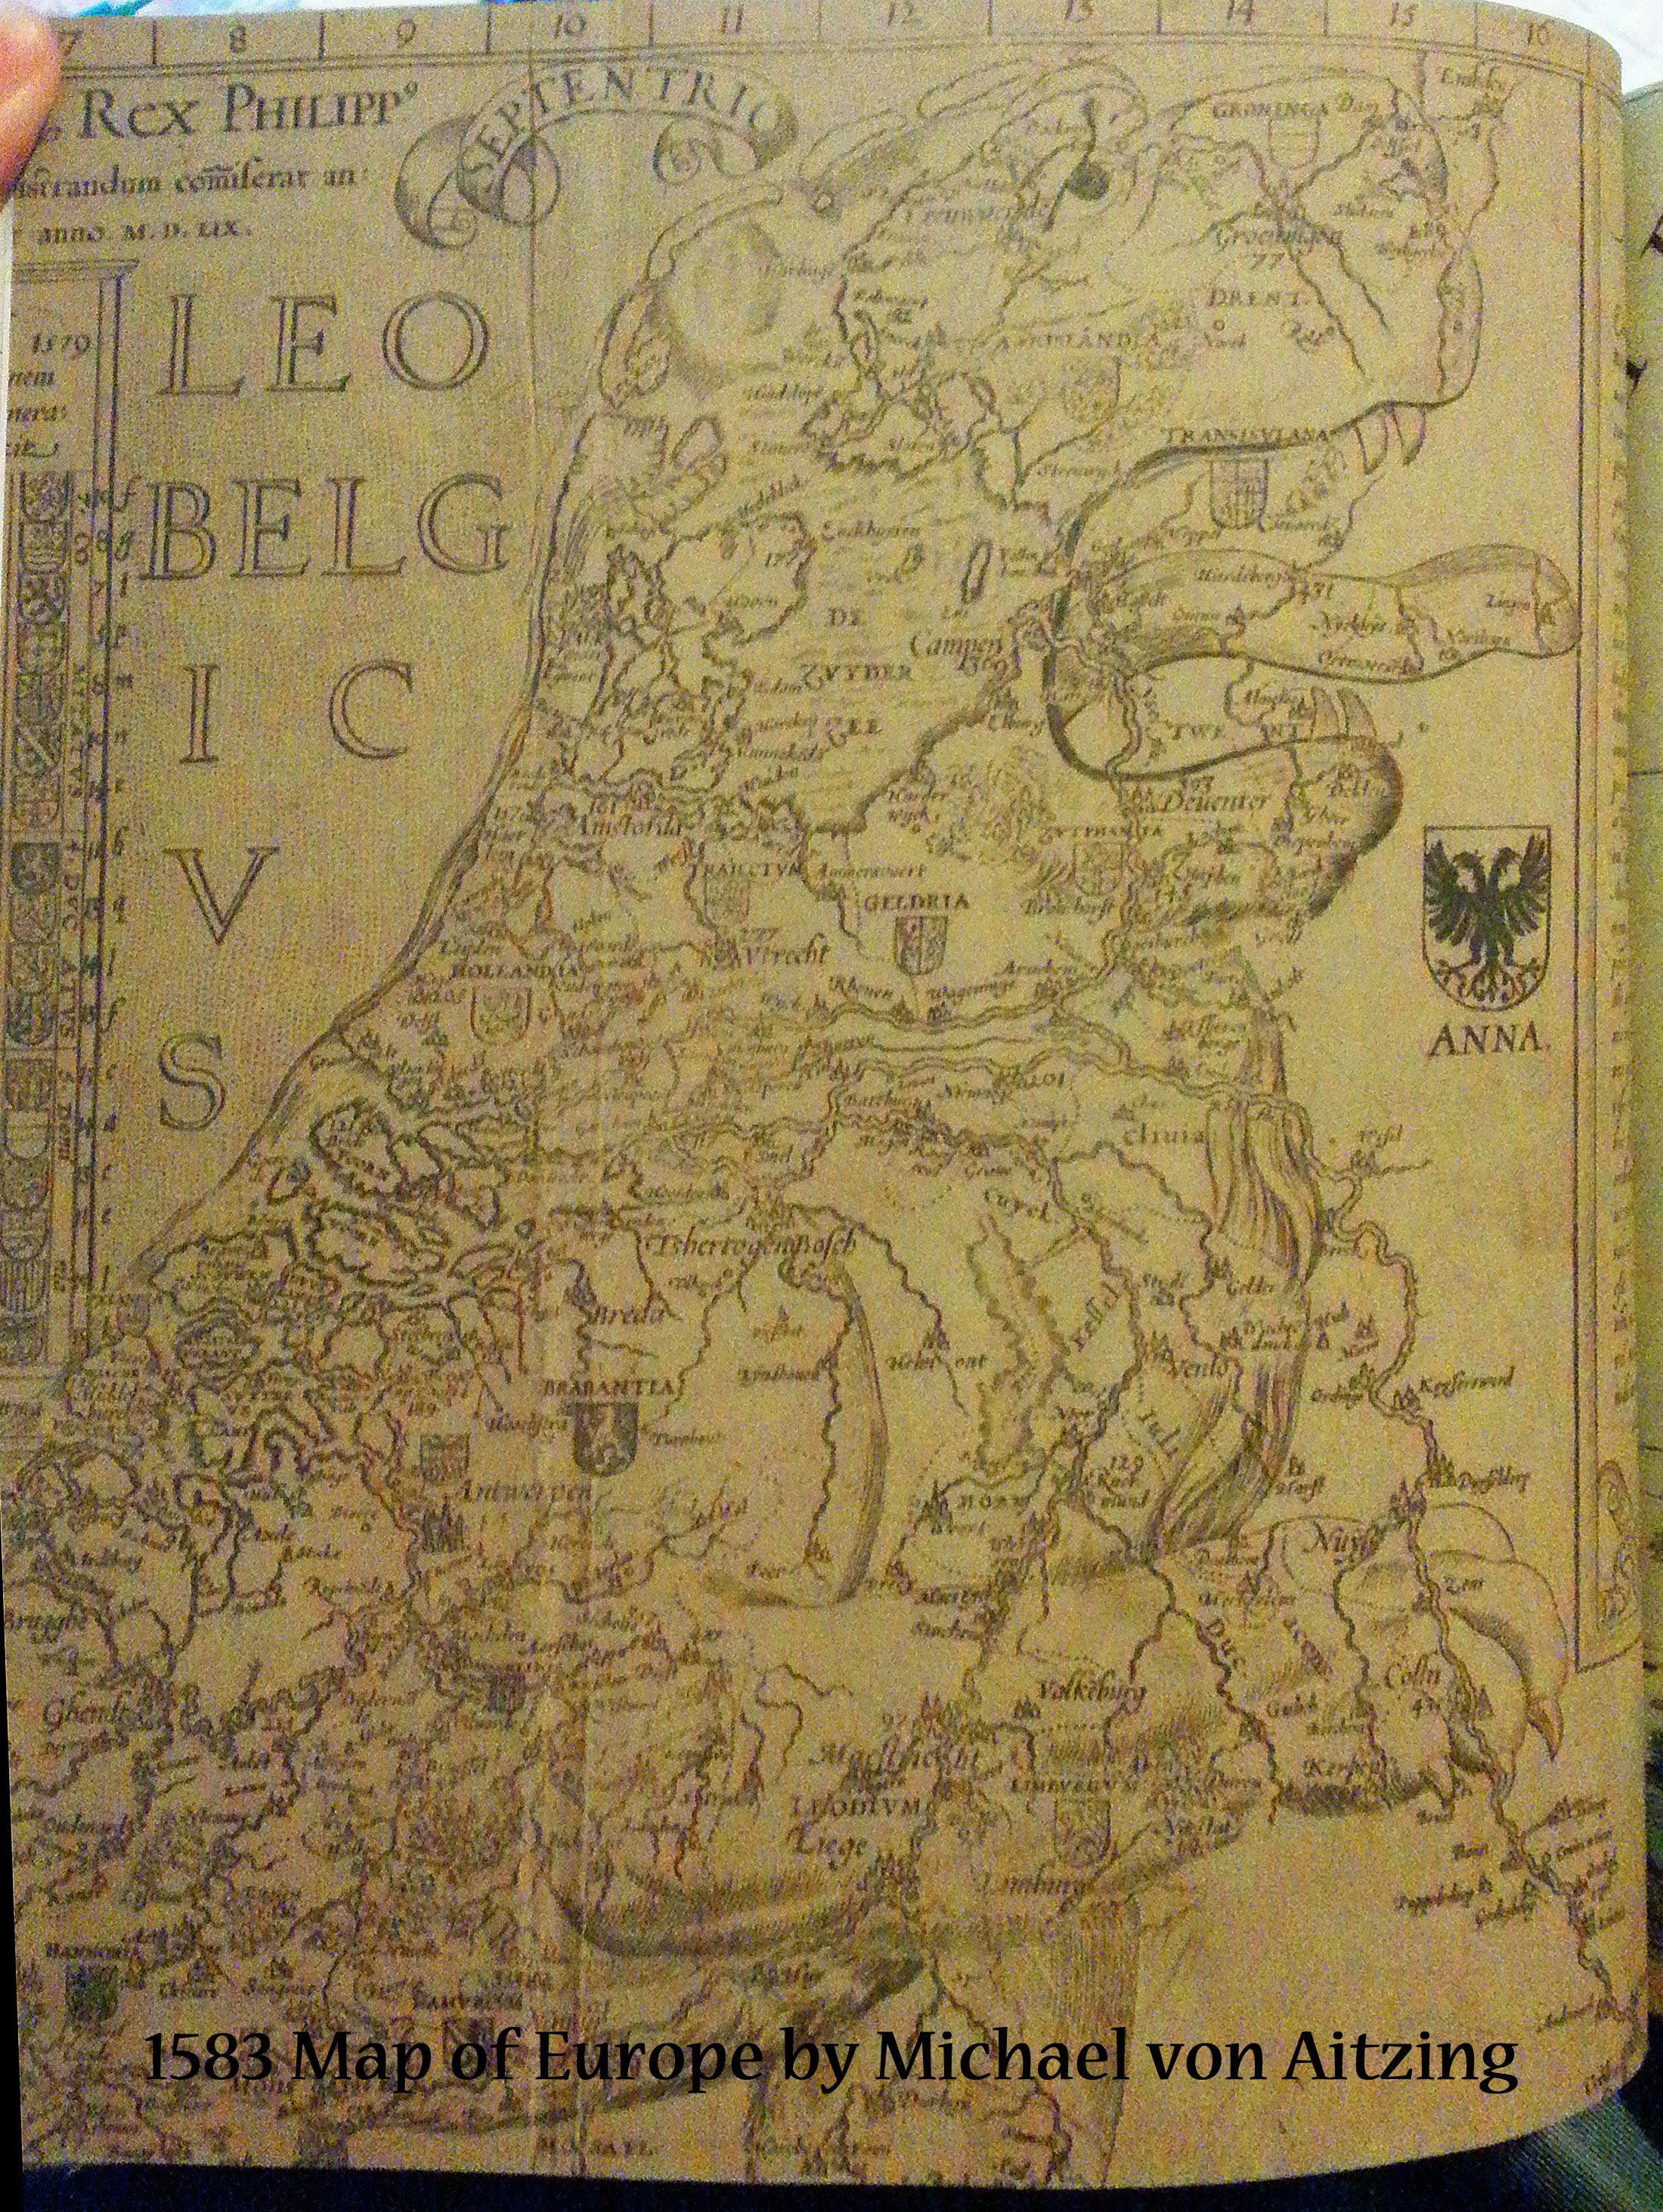 1583 Map of Europe by Michael von Aitzing | Book Addicts